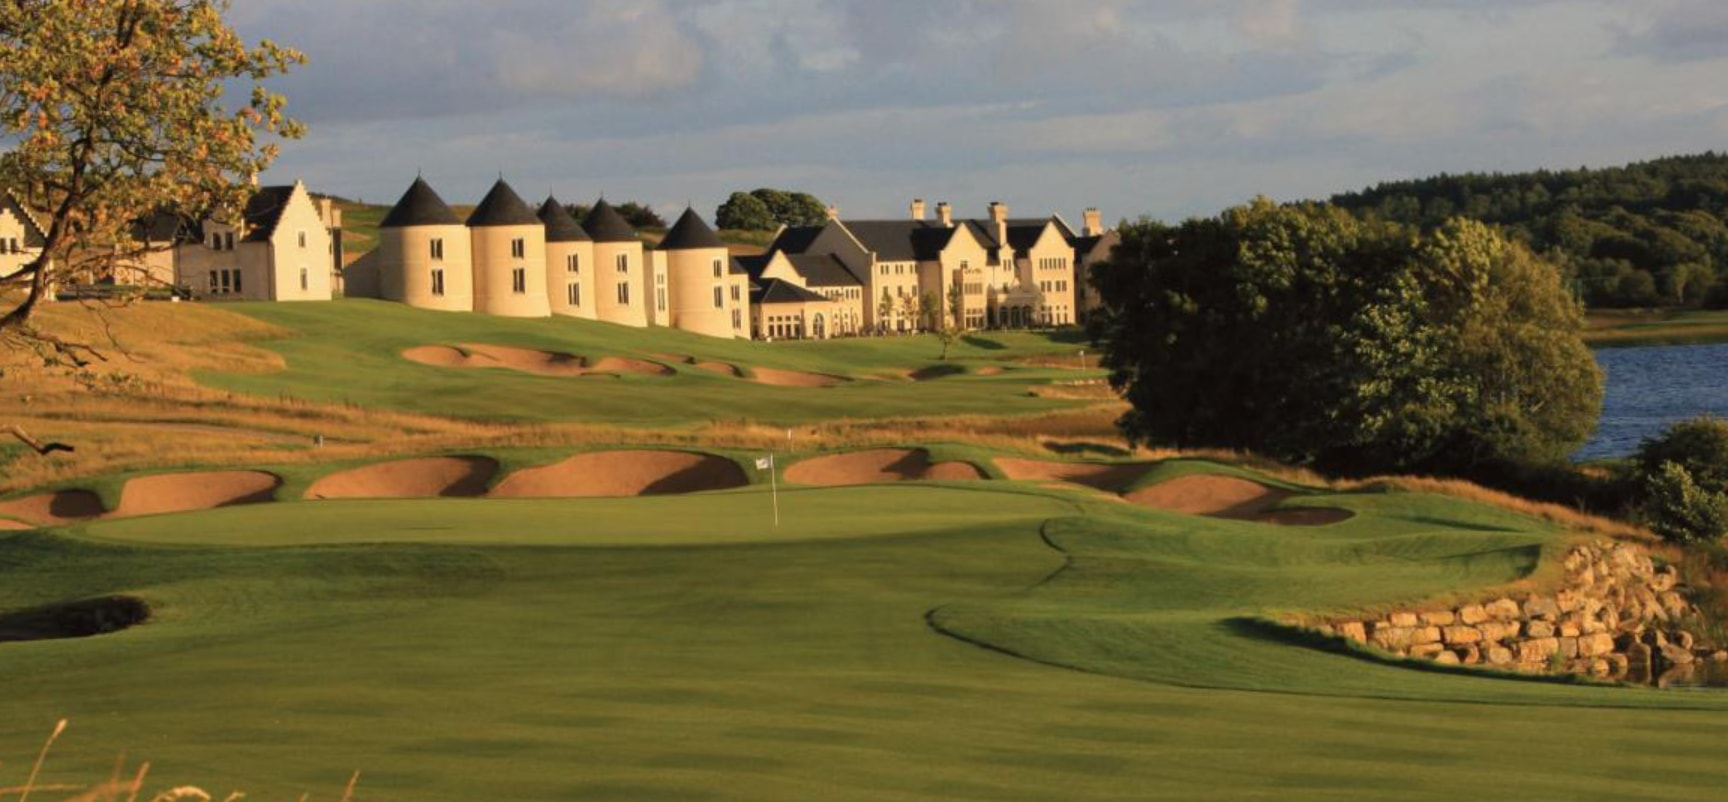 Lough Erne Golf Course